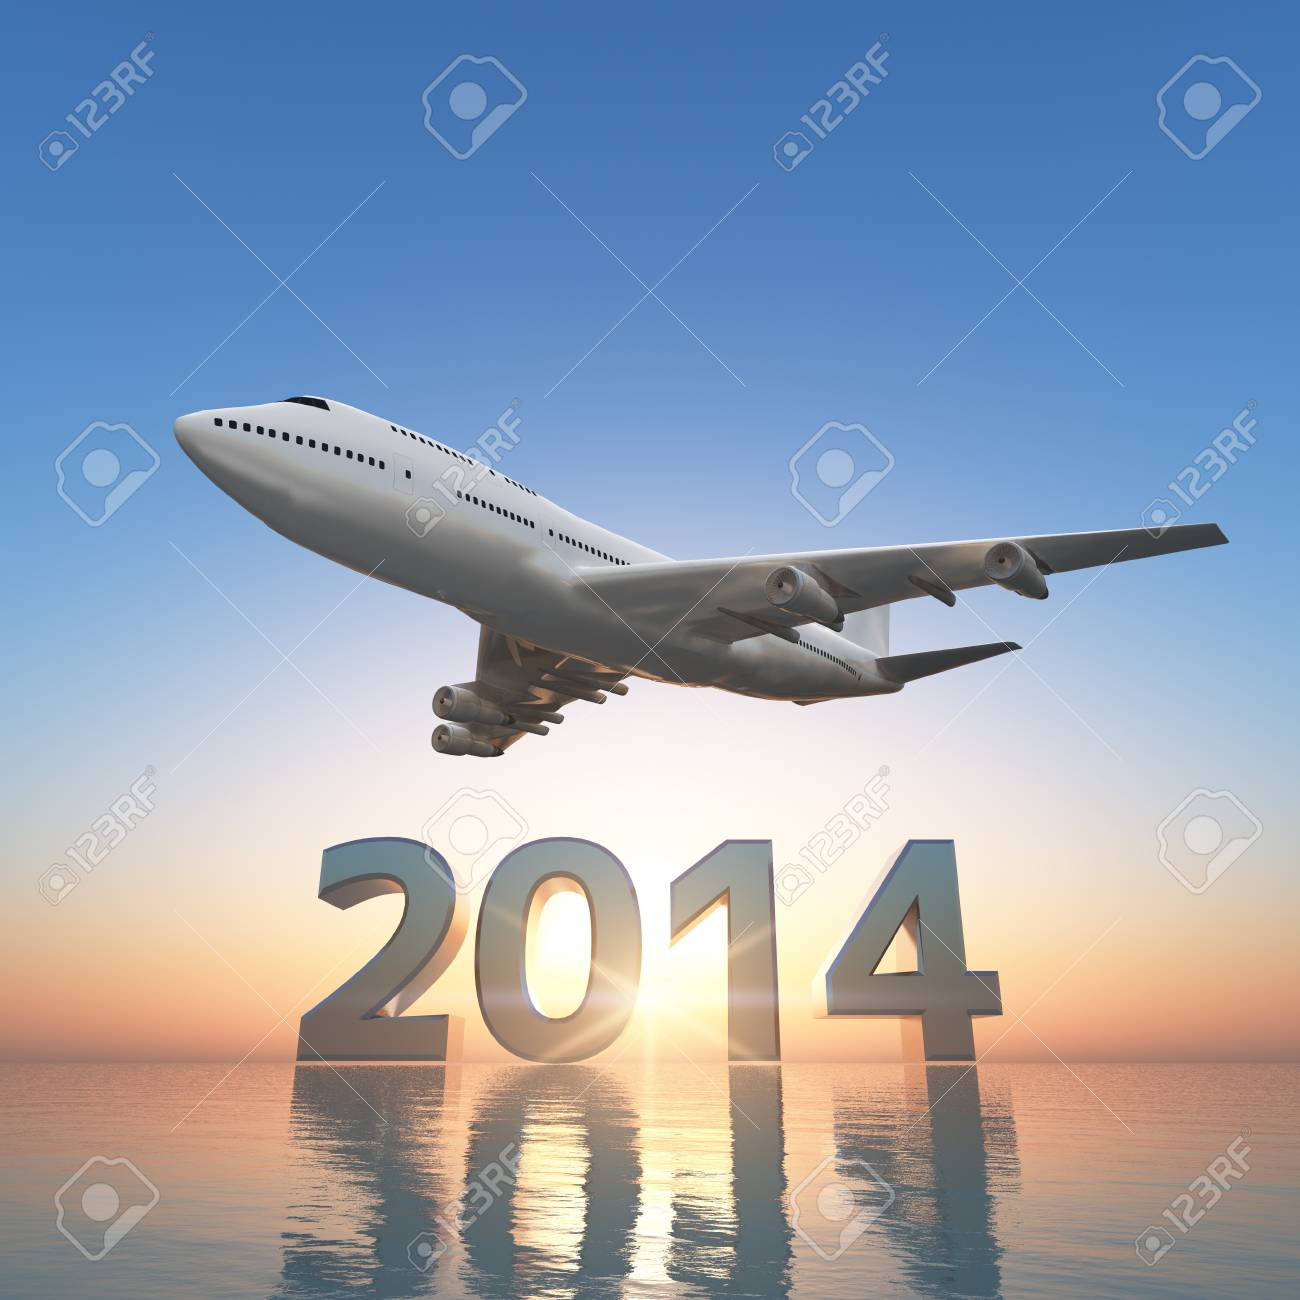 2014 and airplane - 21035308